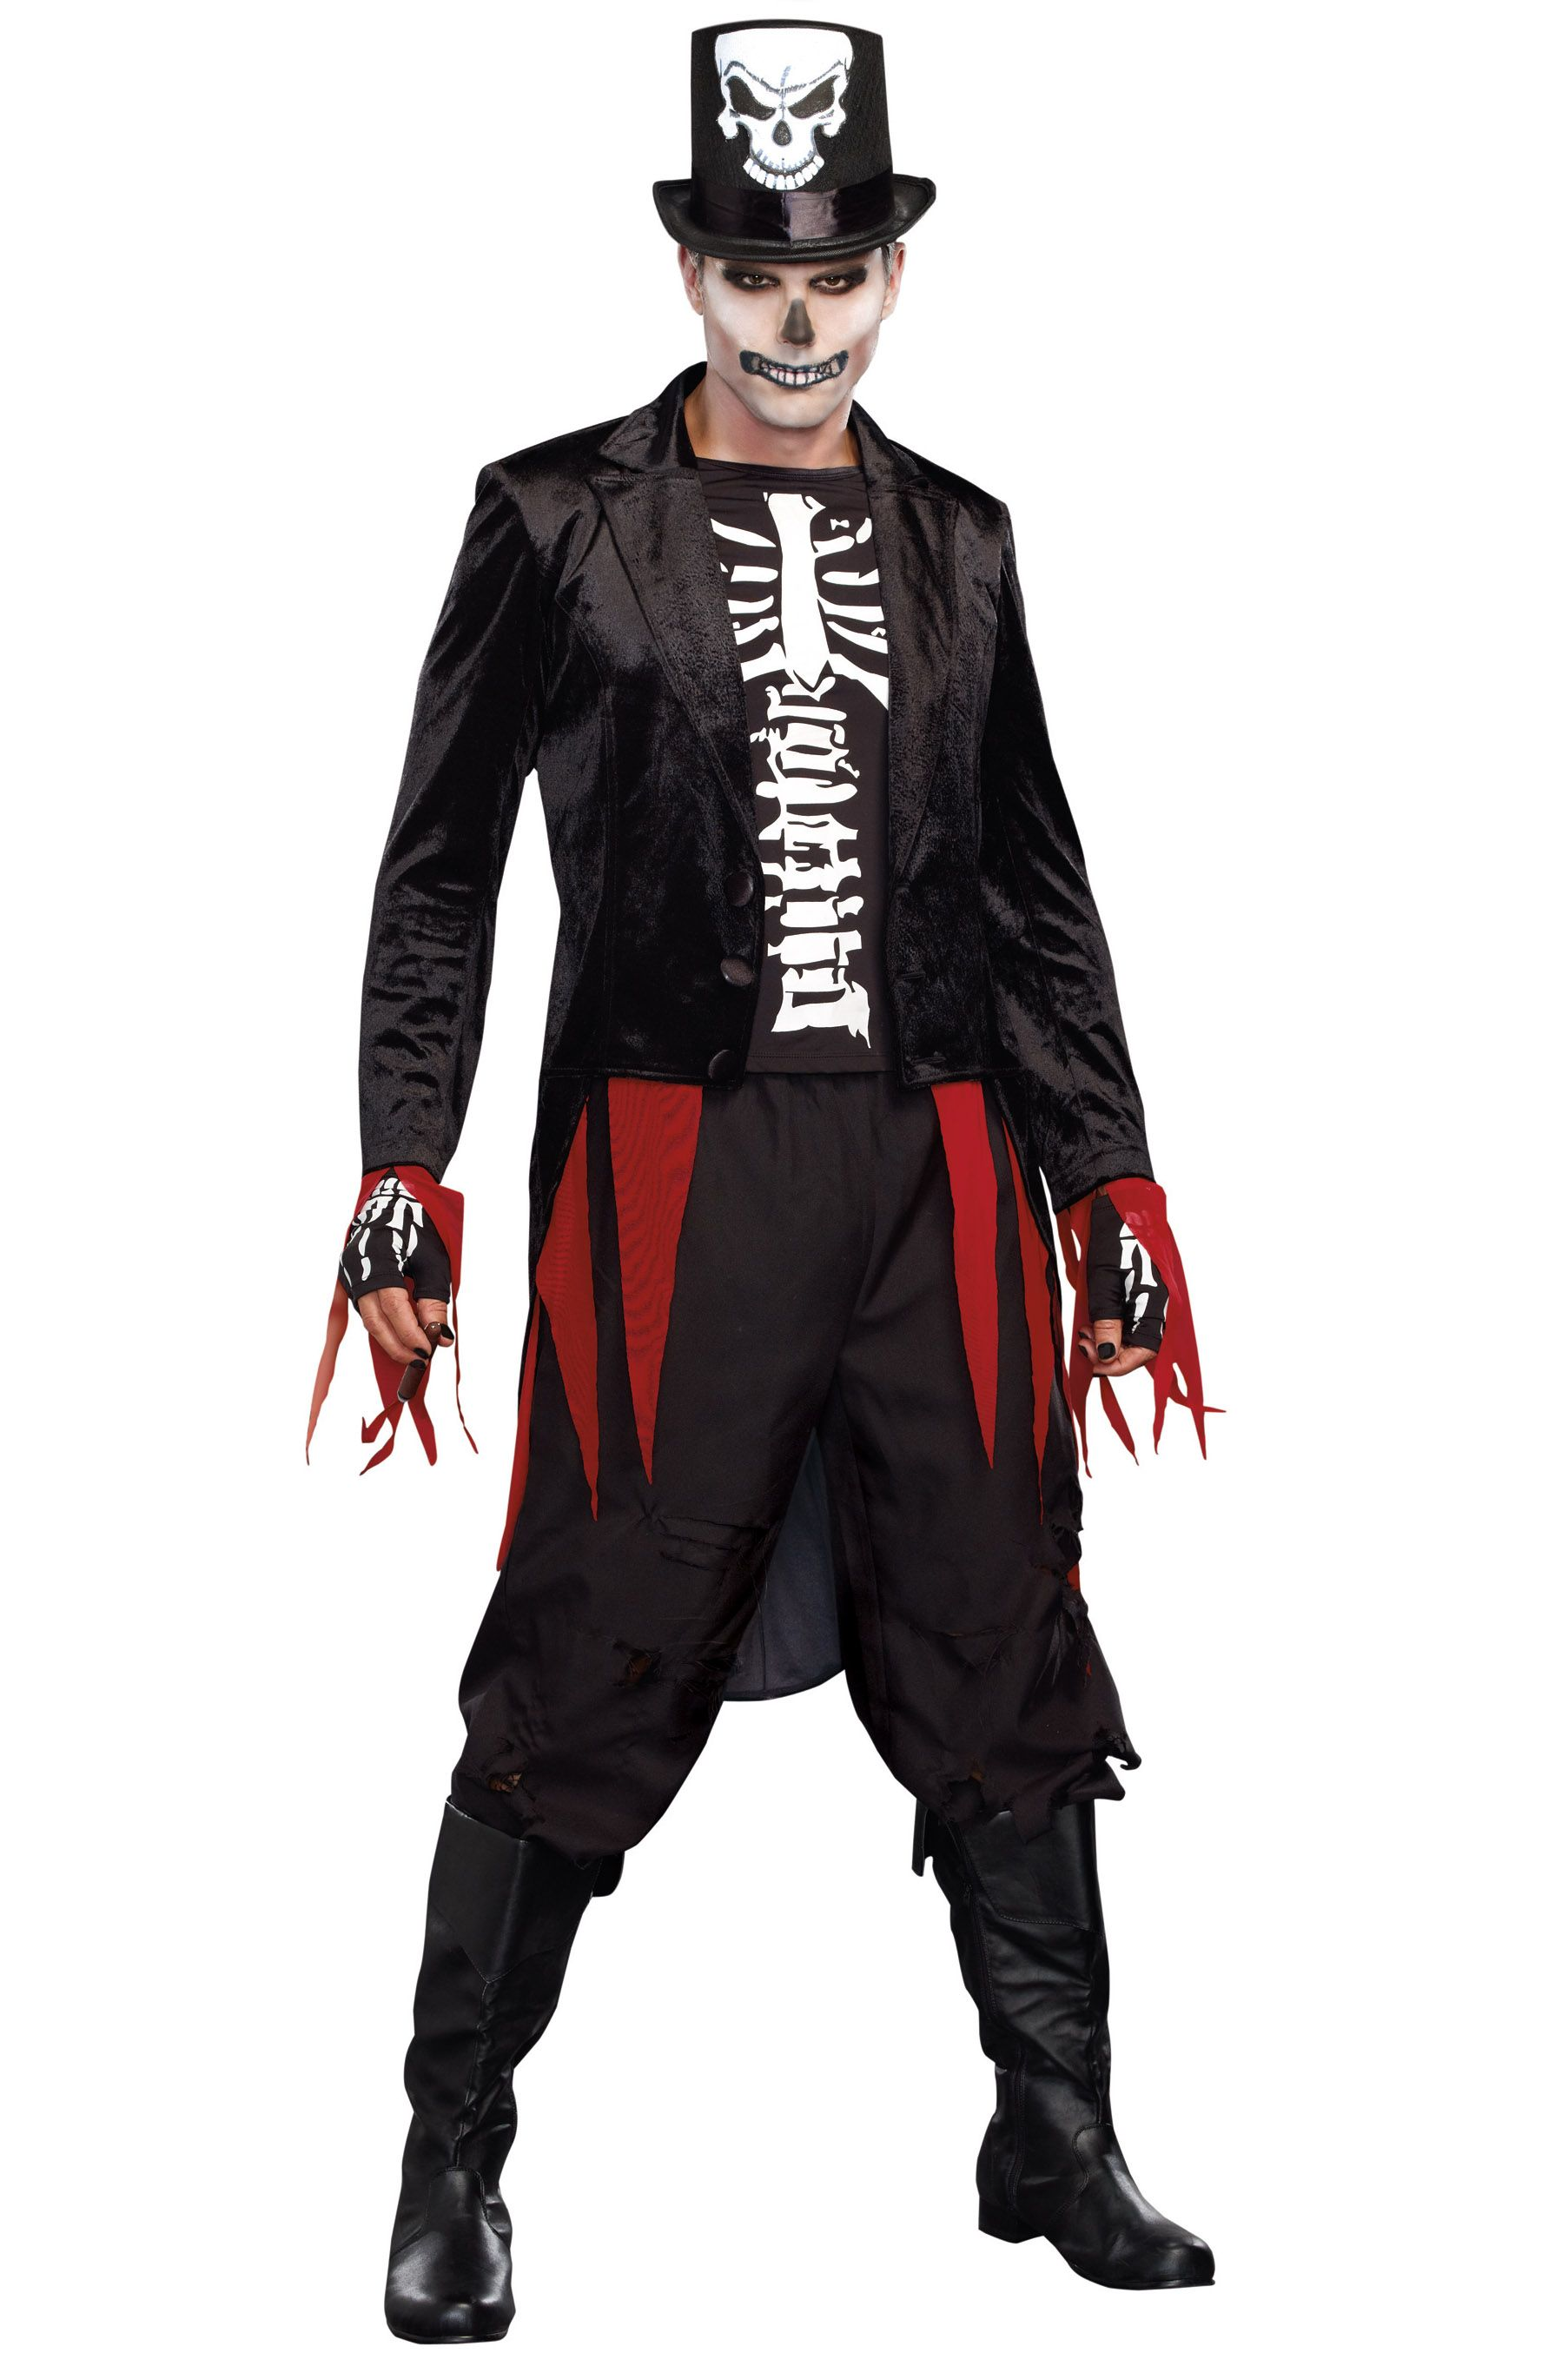 Shop skeleton costumes like this Mr. Bones Costume at Lingerie ...